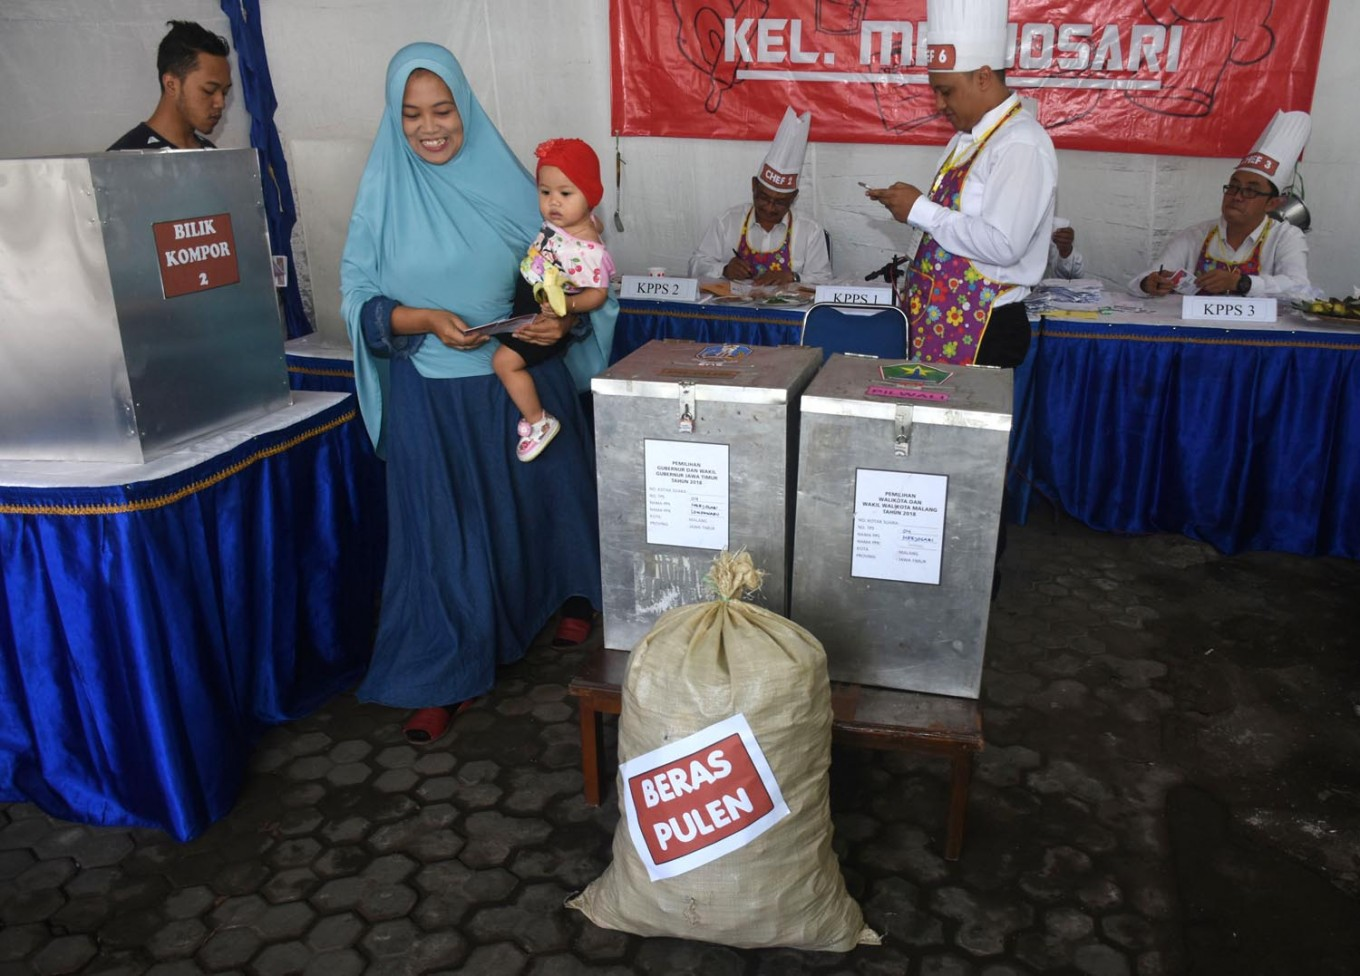 Polling station officials in Mejosari subdistrict, Malang municipality, East Java, are wearing aprons and chef's hats at the kitchen-themed polling station. Most of the officials work as cooks on Wednesday, June 27, 2018. JP/Aman Rochman